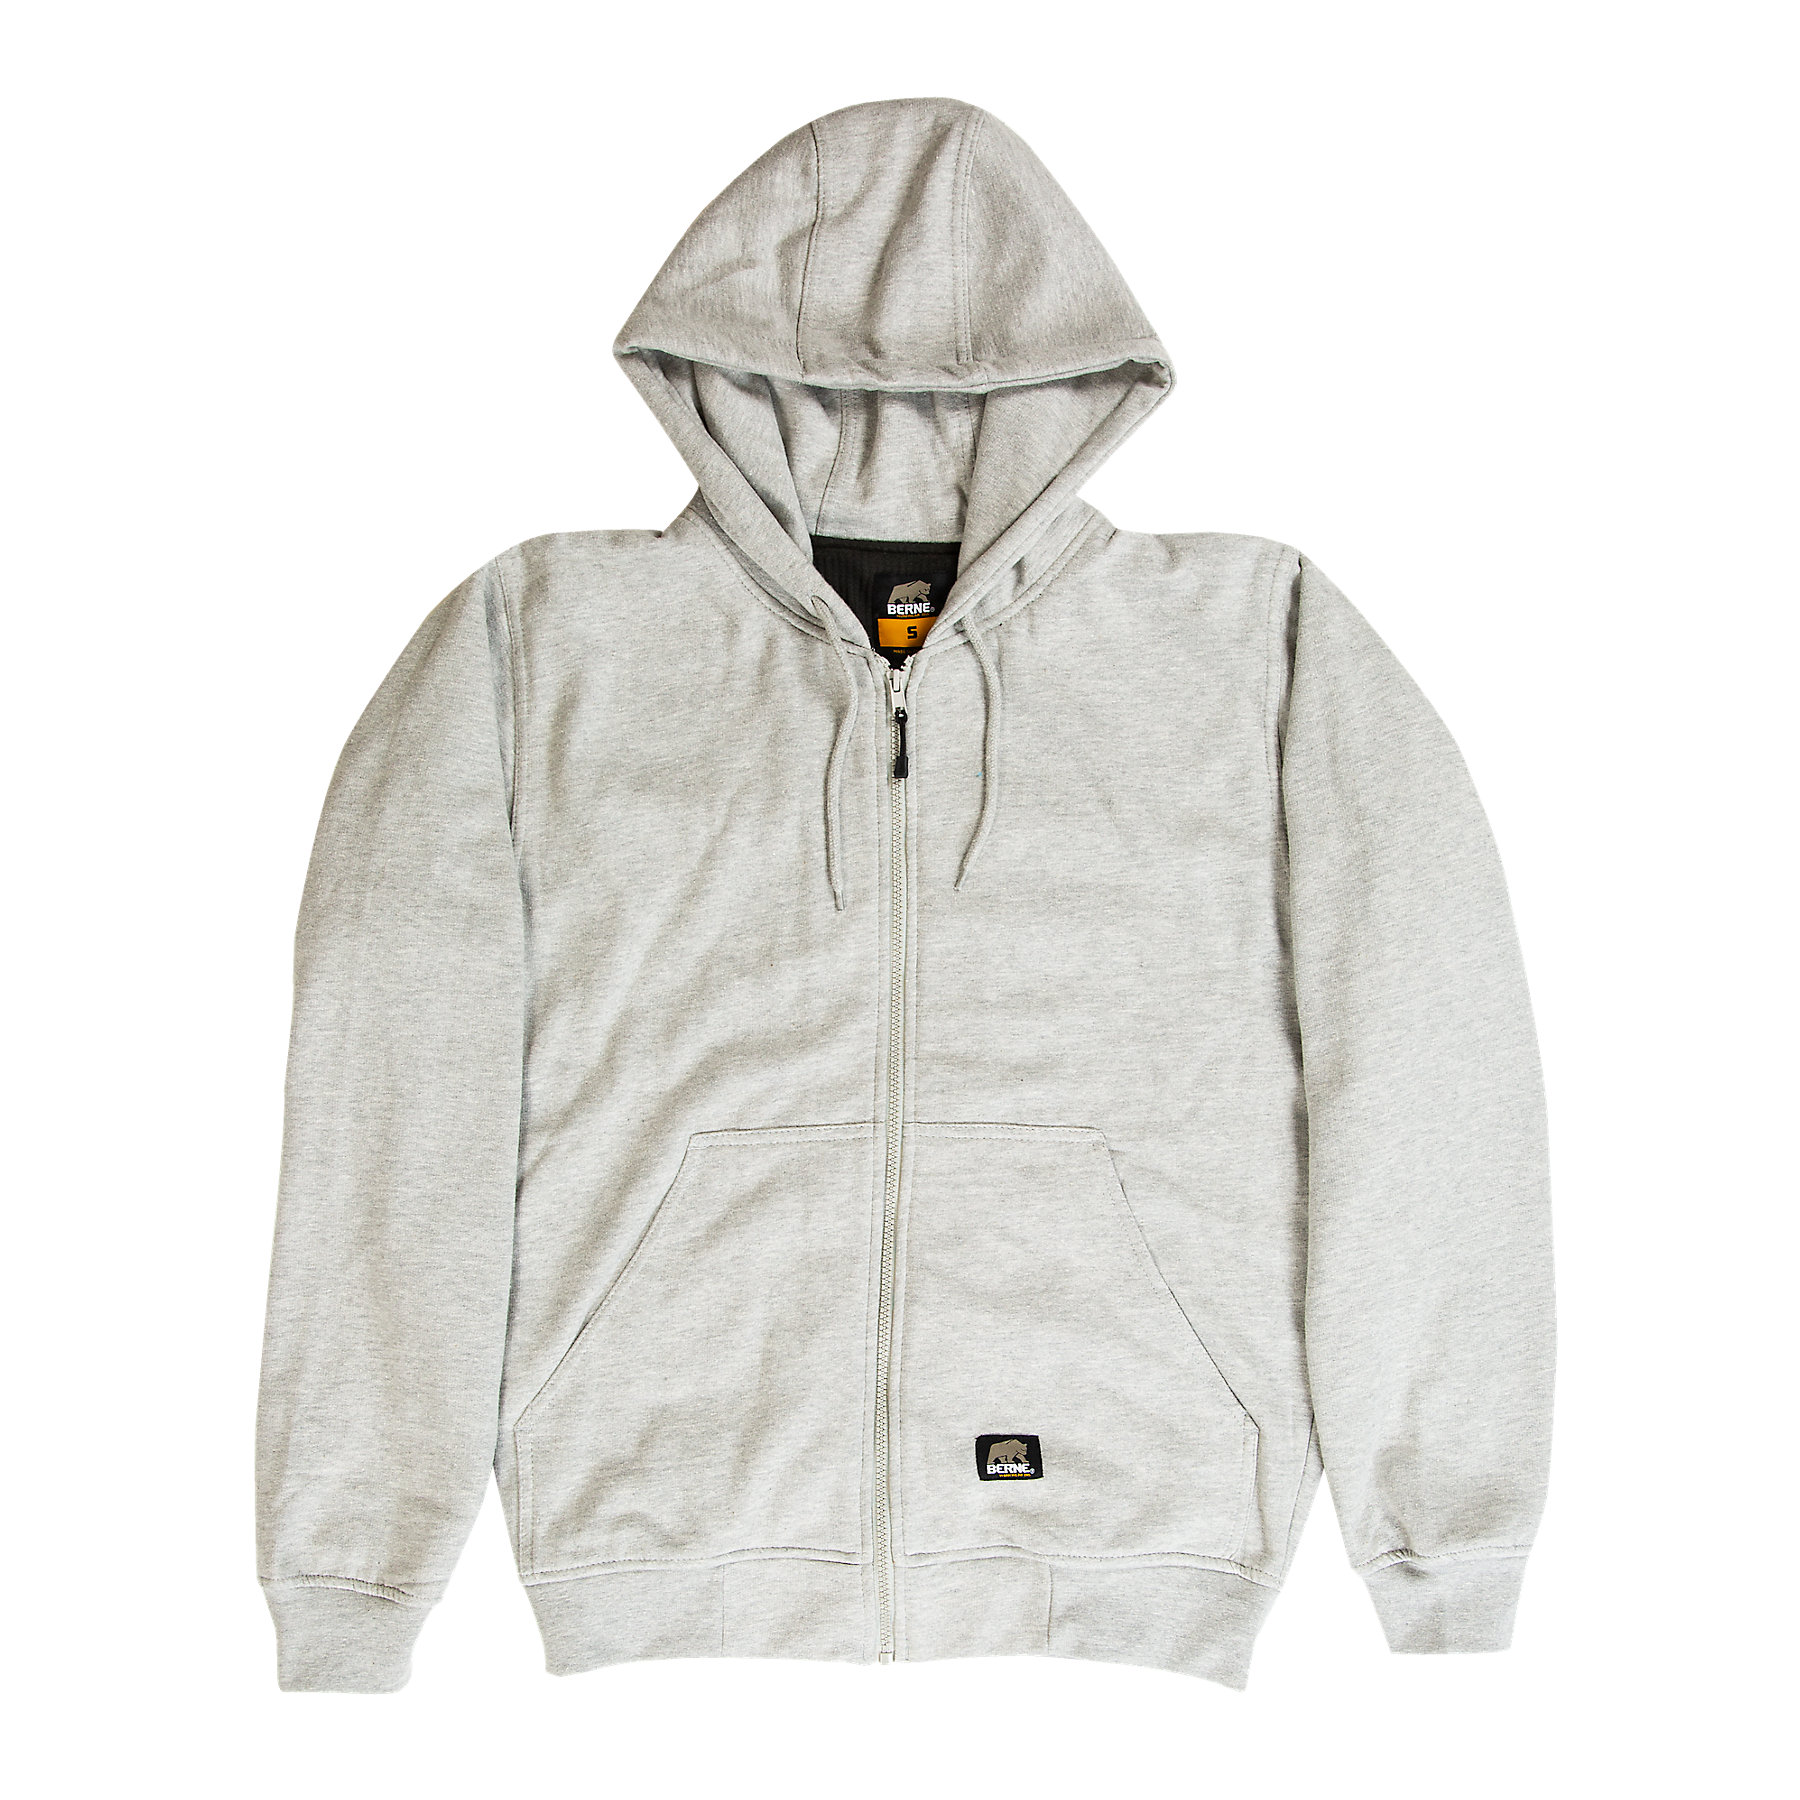 Buy Thermal Lined Hooded Sweatshirt Berne Apparel Online